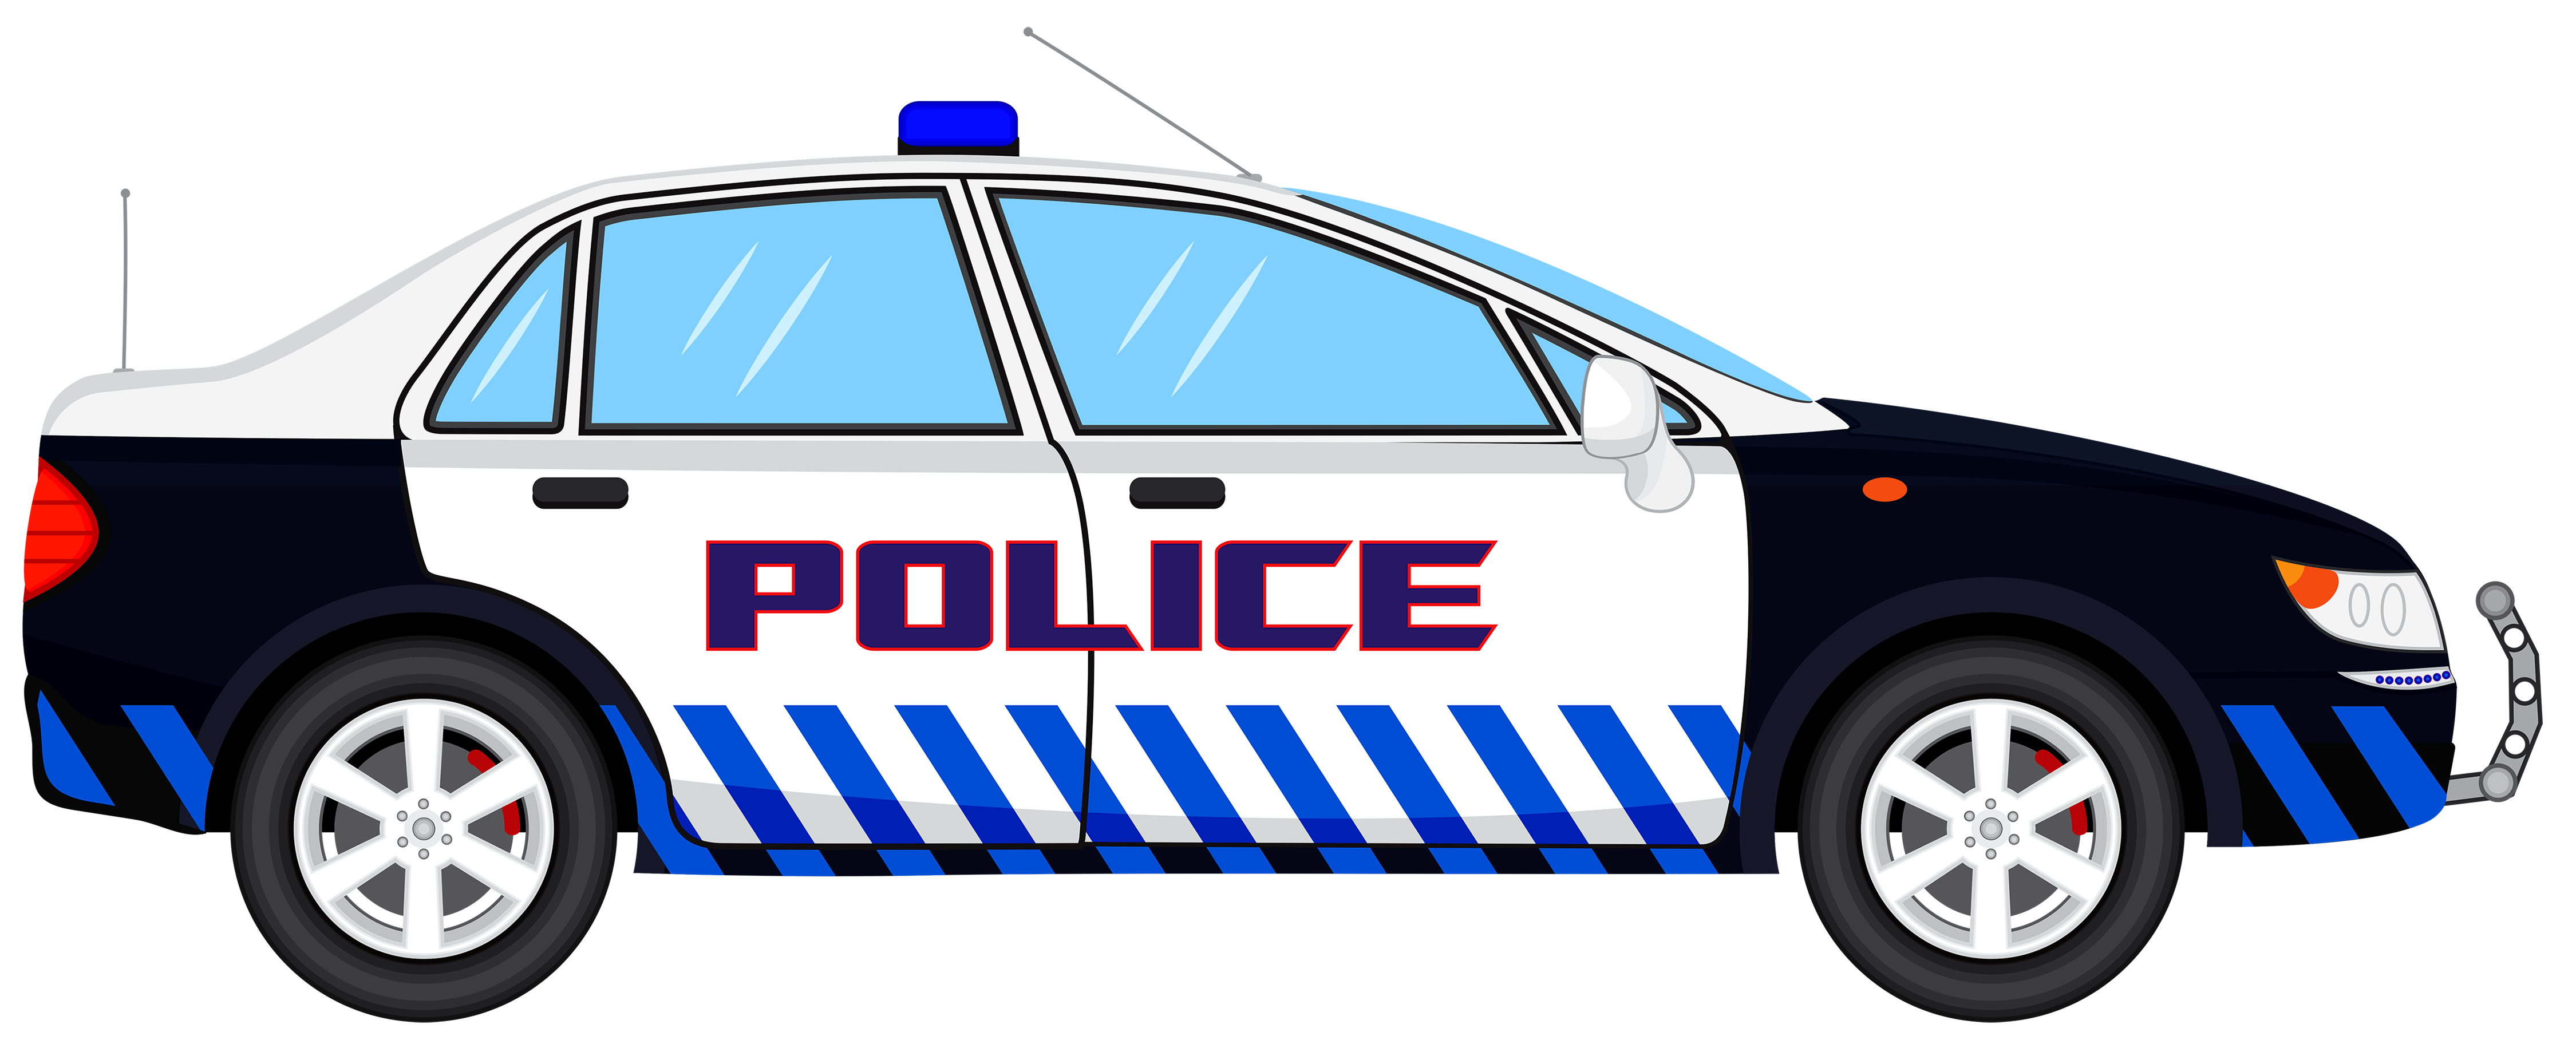 Car clip art images. Police clipart police mobile